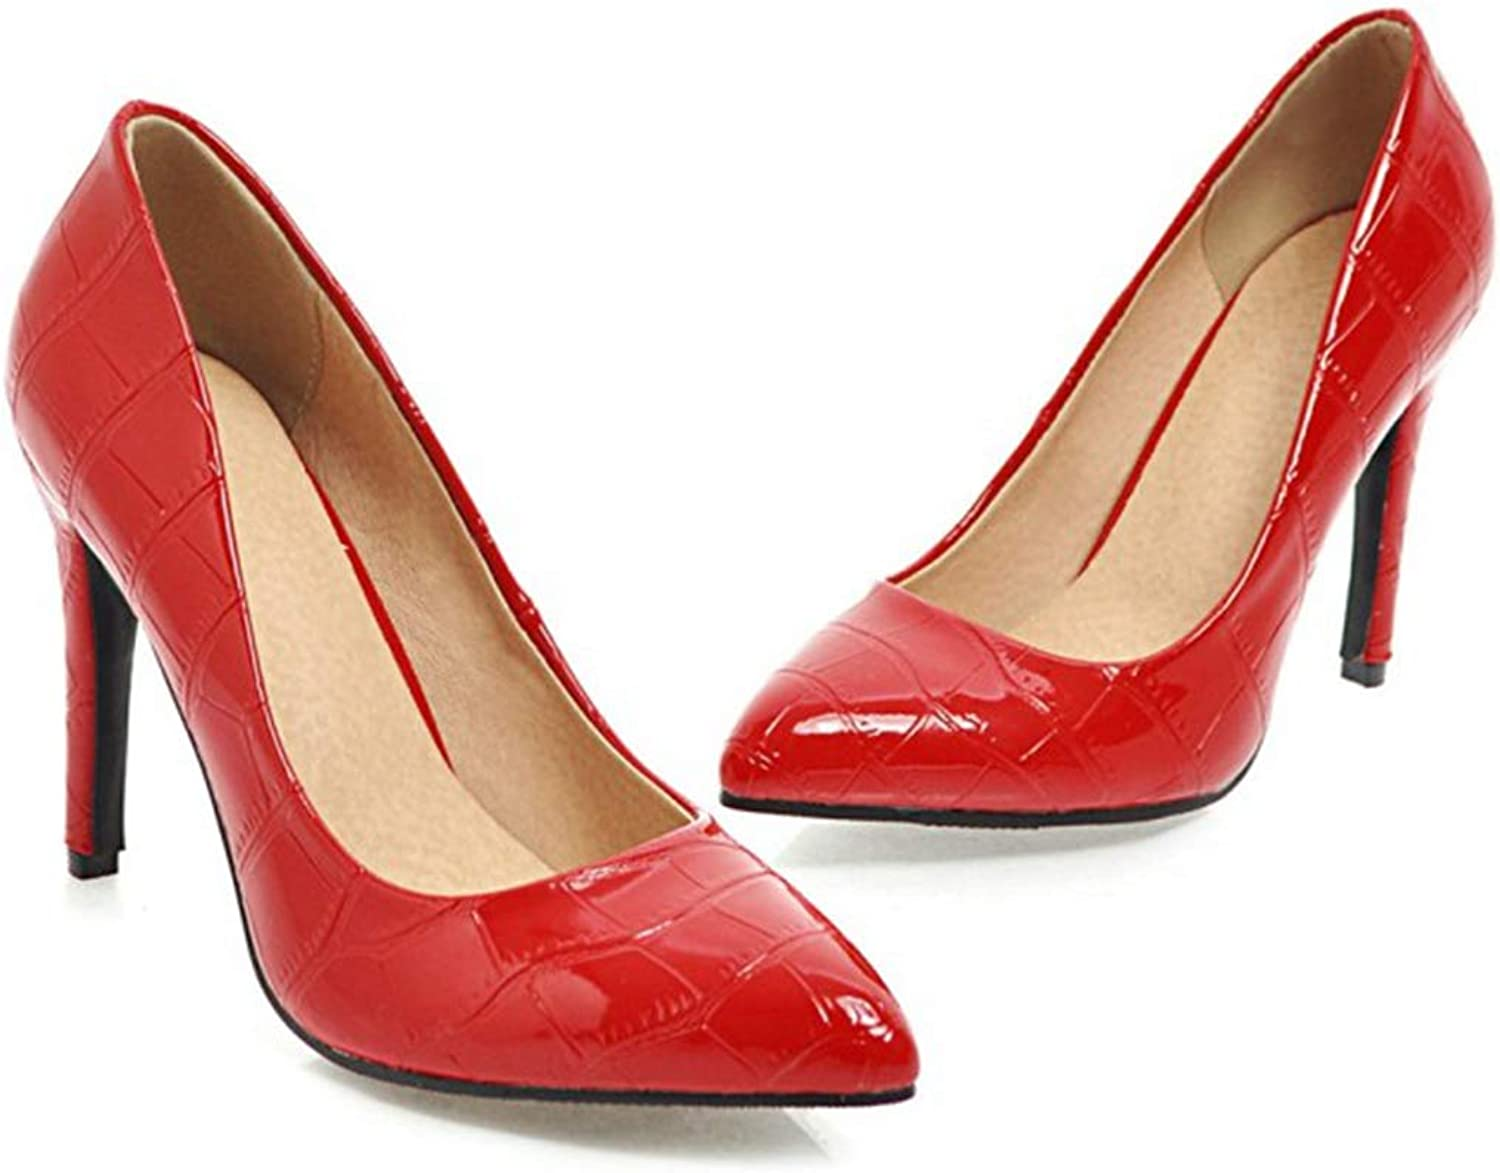 Owen Moll Women Pumps, Classic Plaid Pointed Toe Stiletto Thin High Heels Office Party shoes